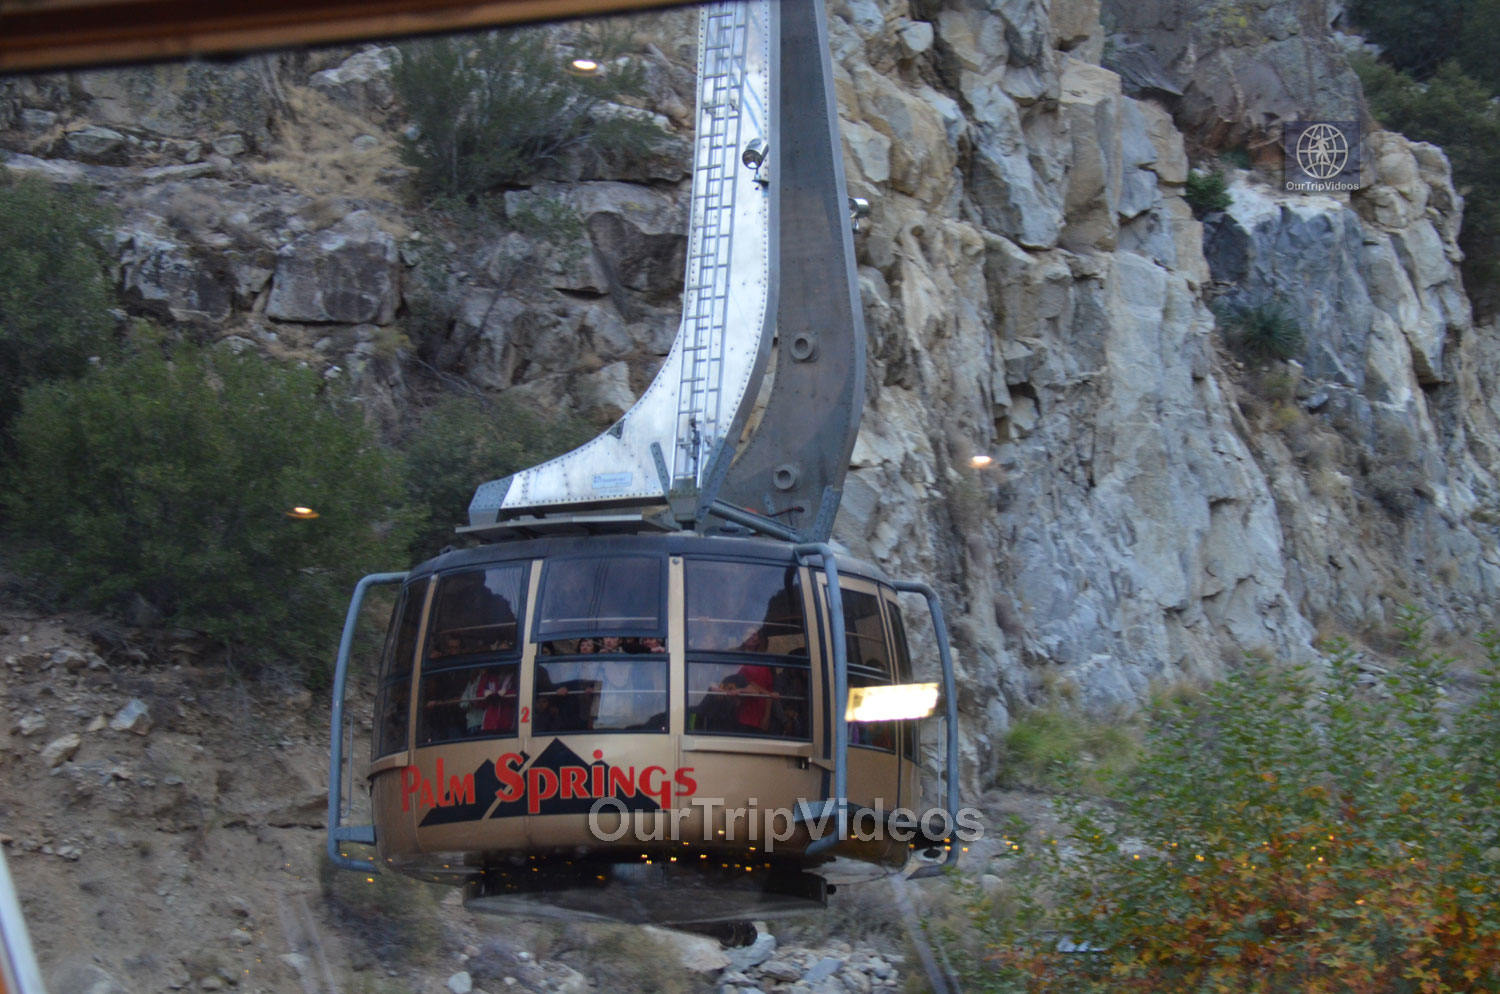 Aerial Tramway, Palm Springs, CA, USA - Picture 14 of 25